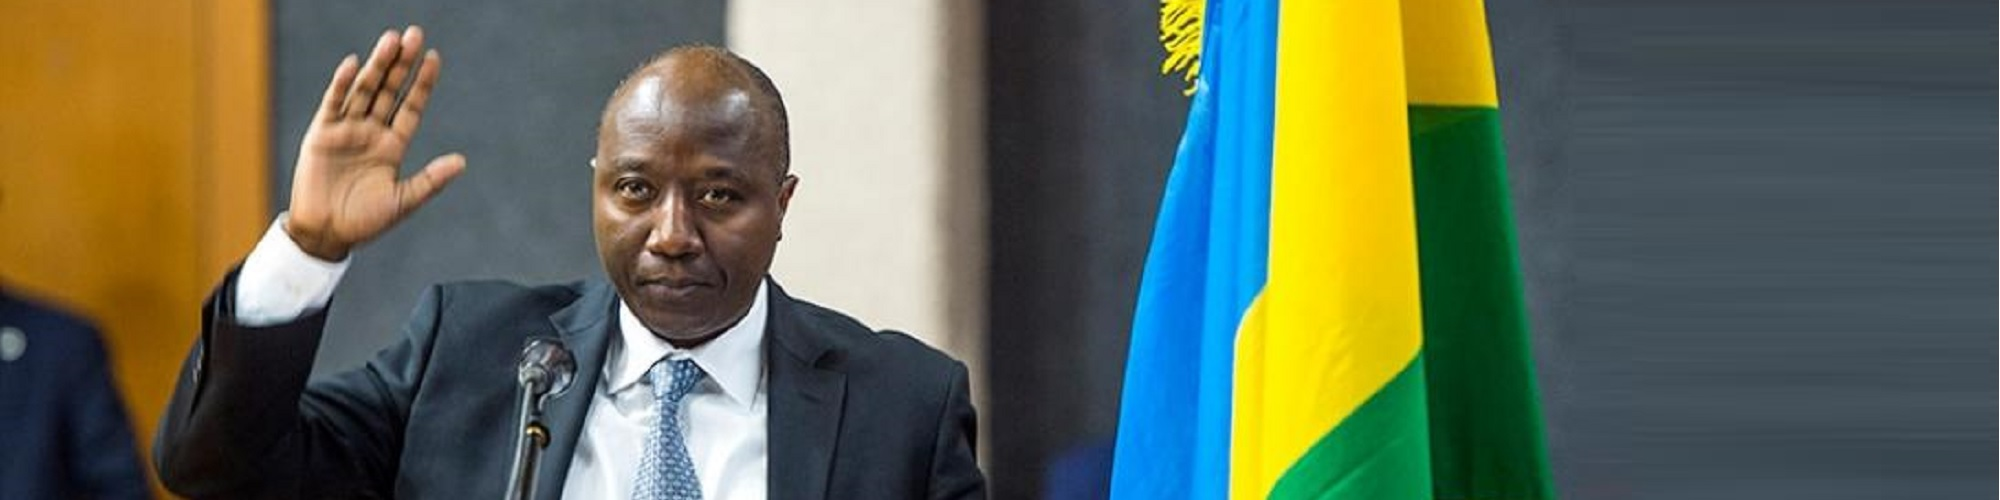 Prime Minister Édouard Ngirente of Rwanda joins the Compact2025 Leadership Council